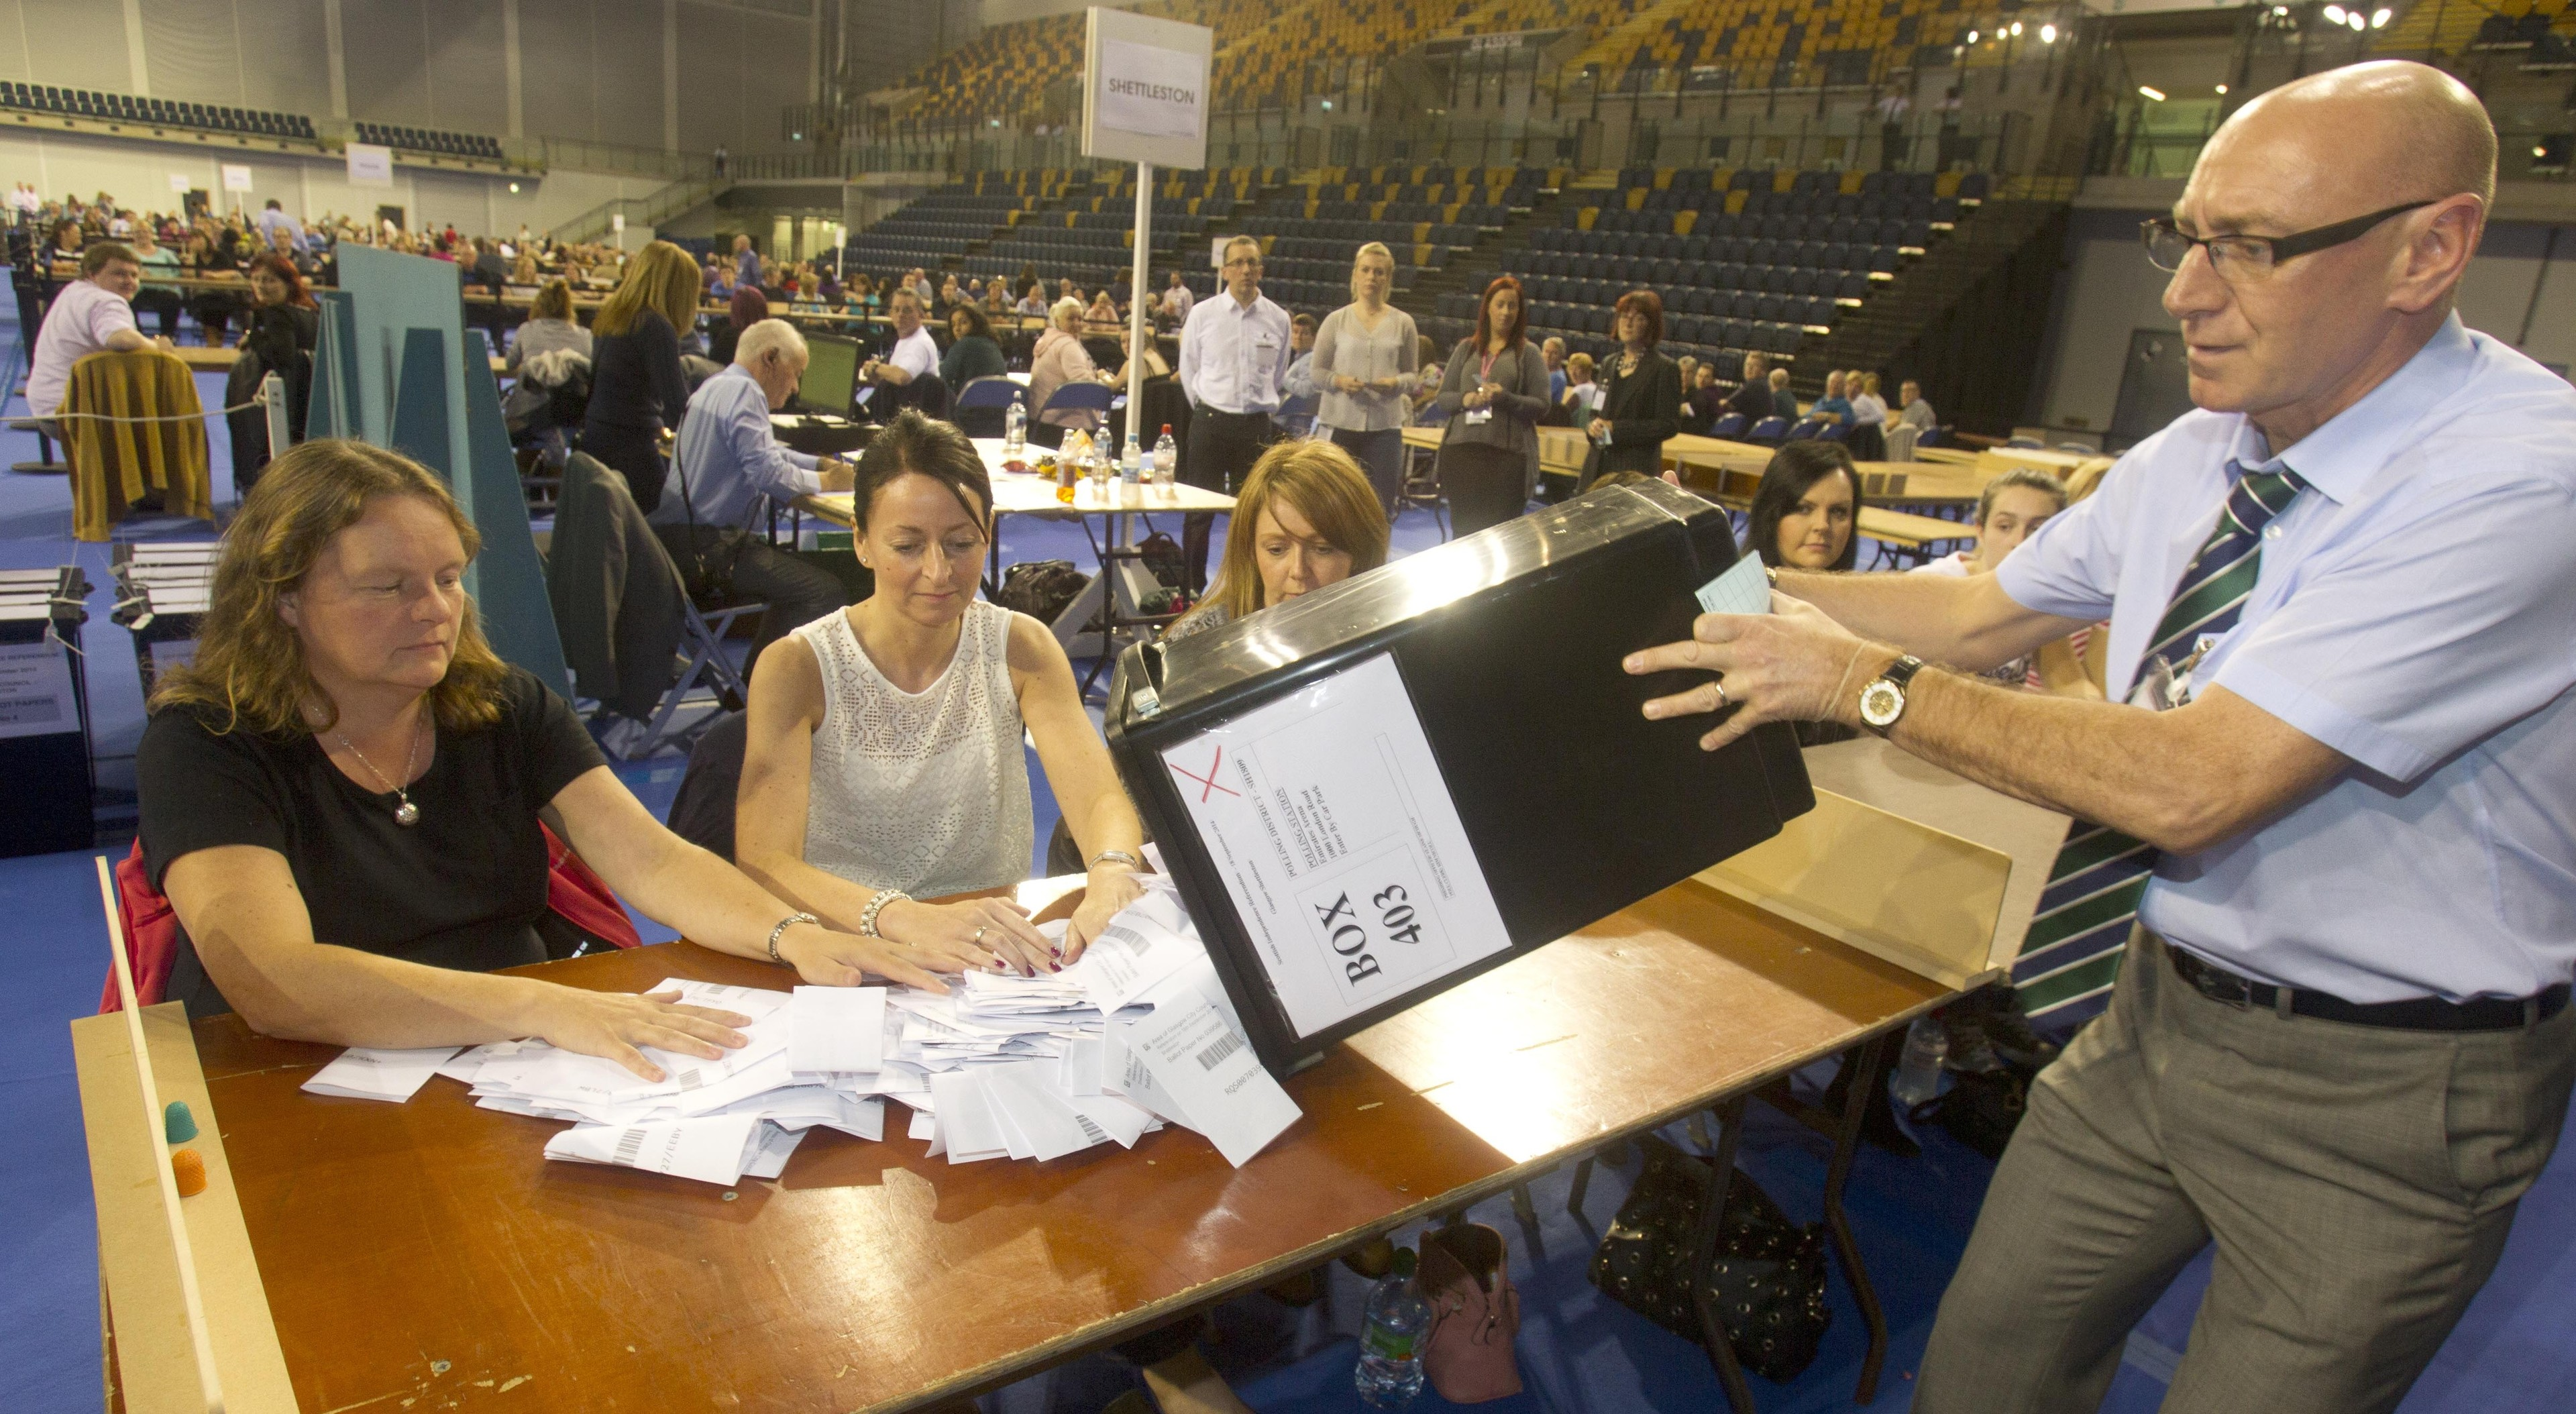 Polling clerks have claimed age discrimination means they will not be involved during the election on Thursday.